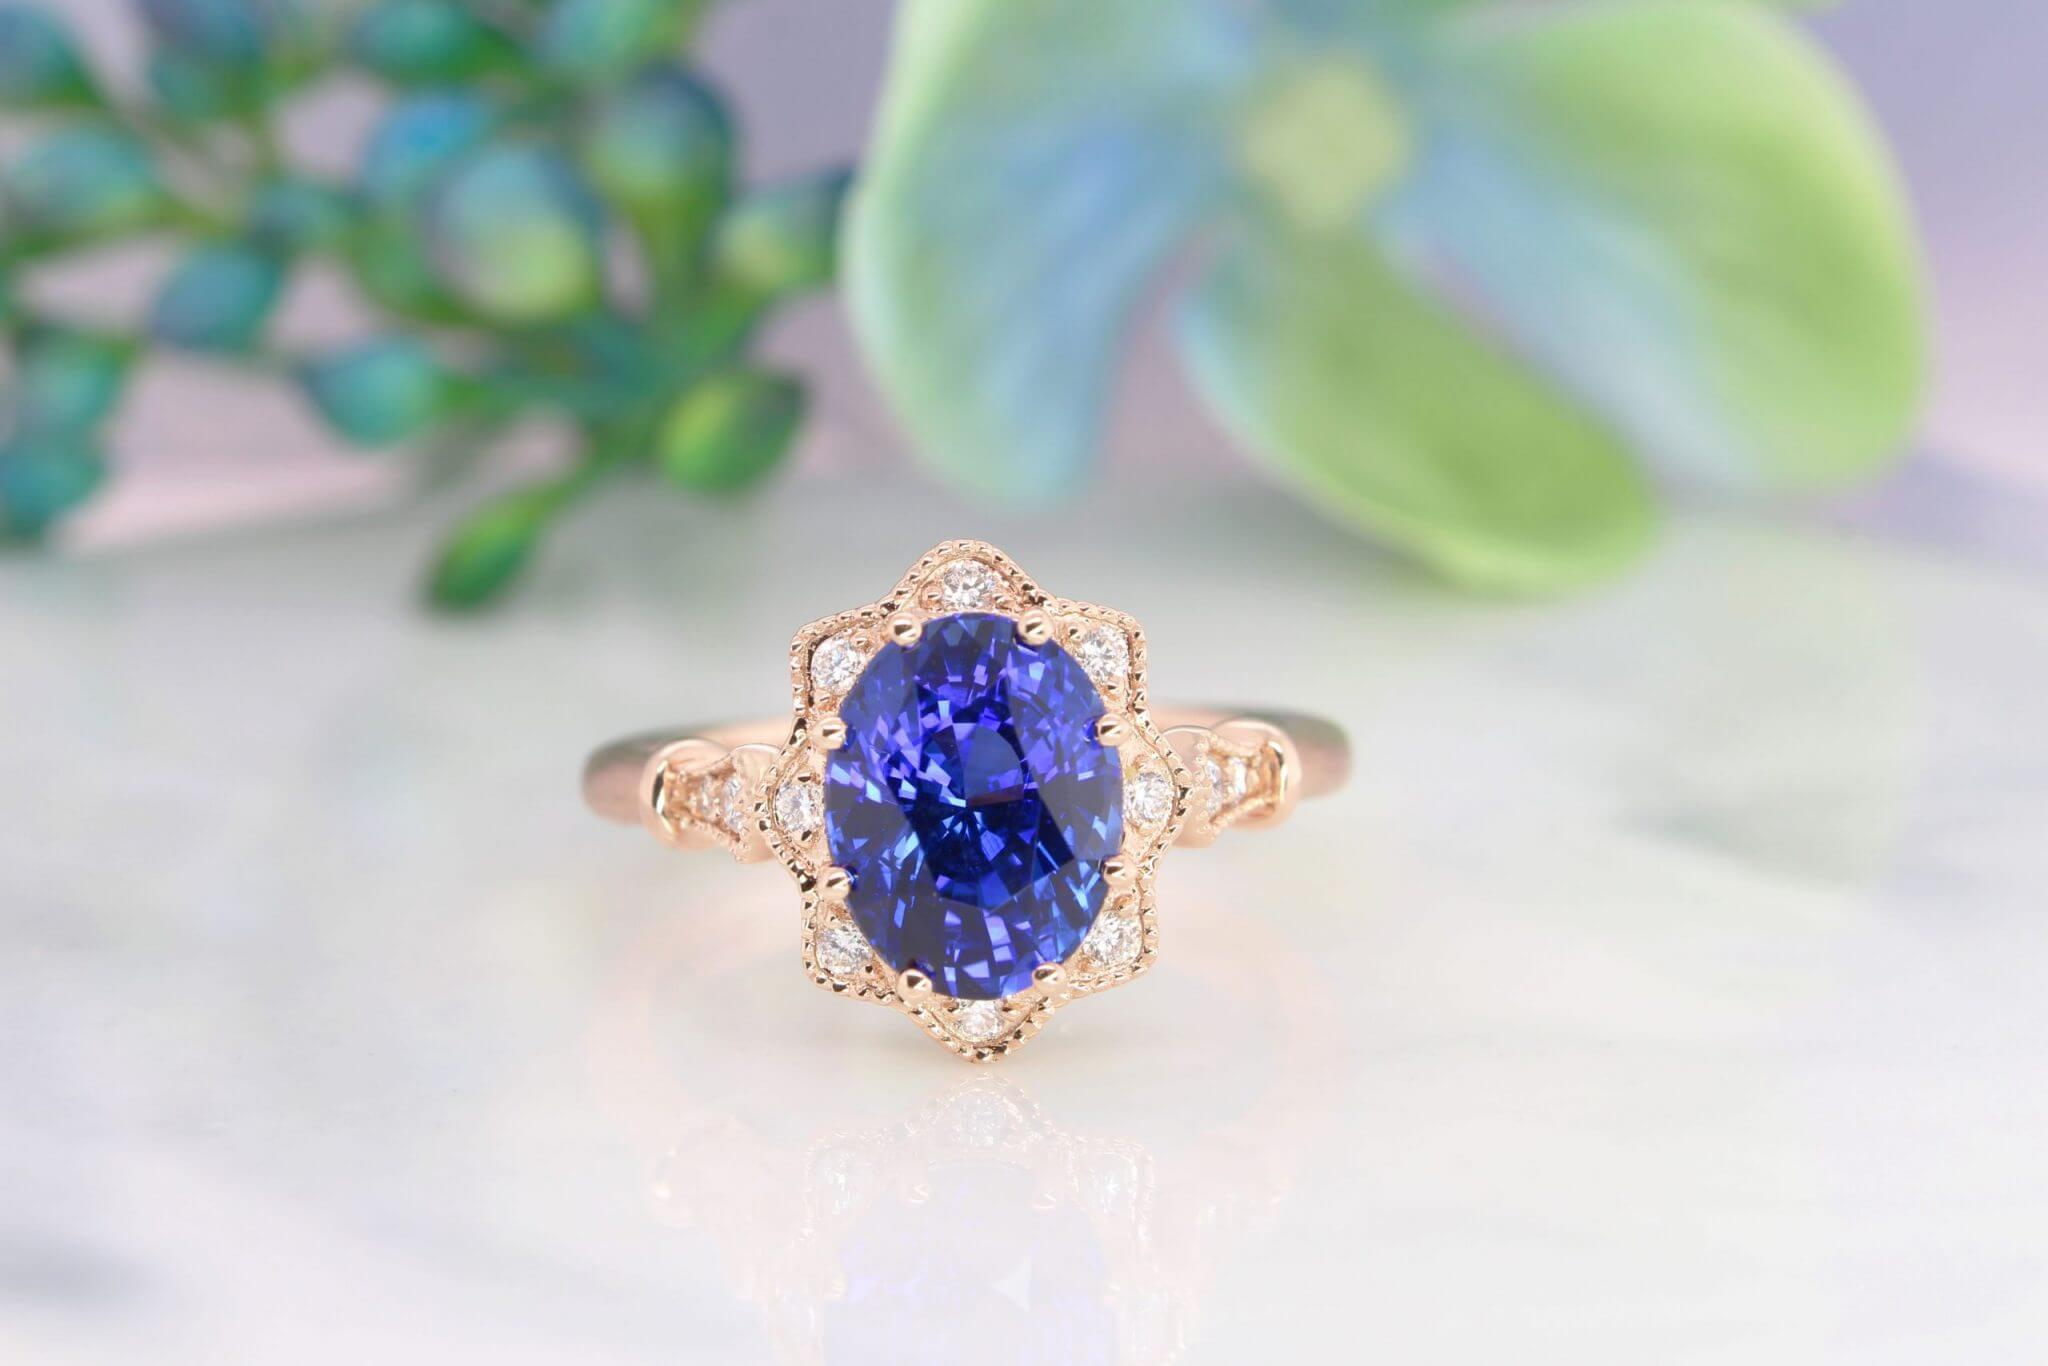 Blue Sapphire Vintage Floral Ring with Halo Diamond